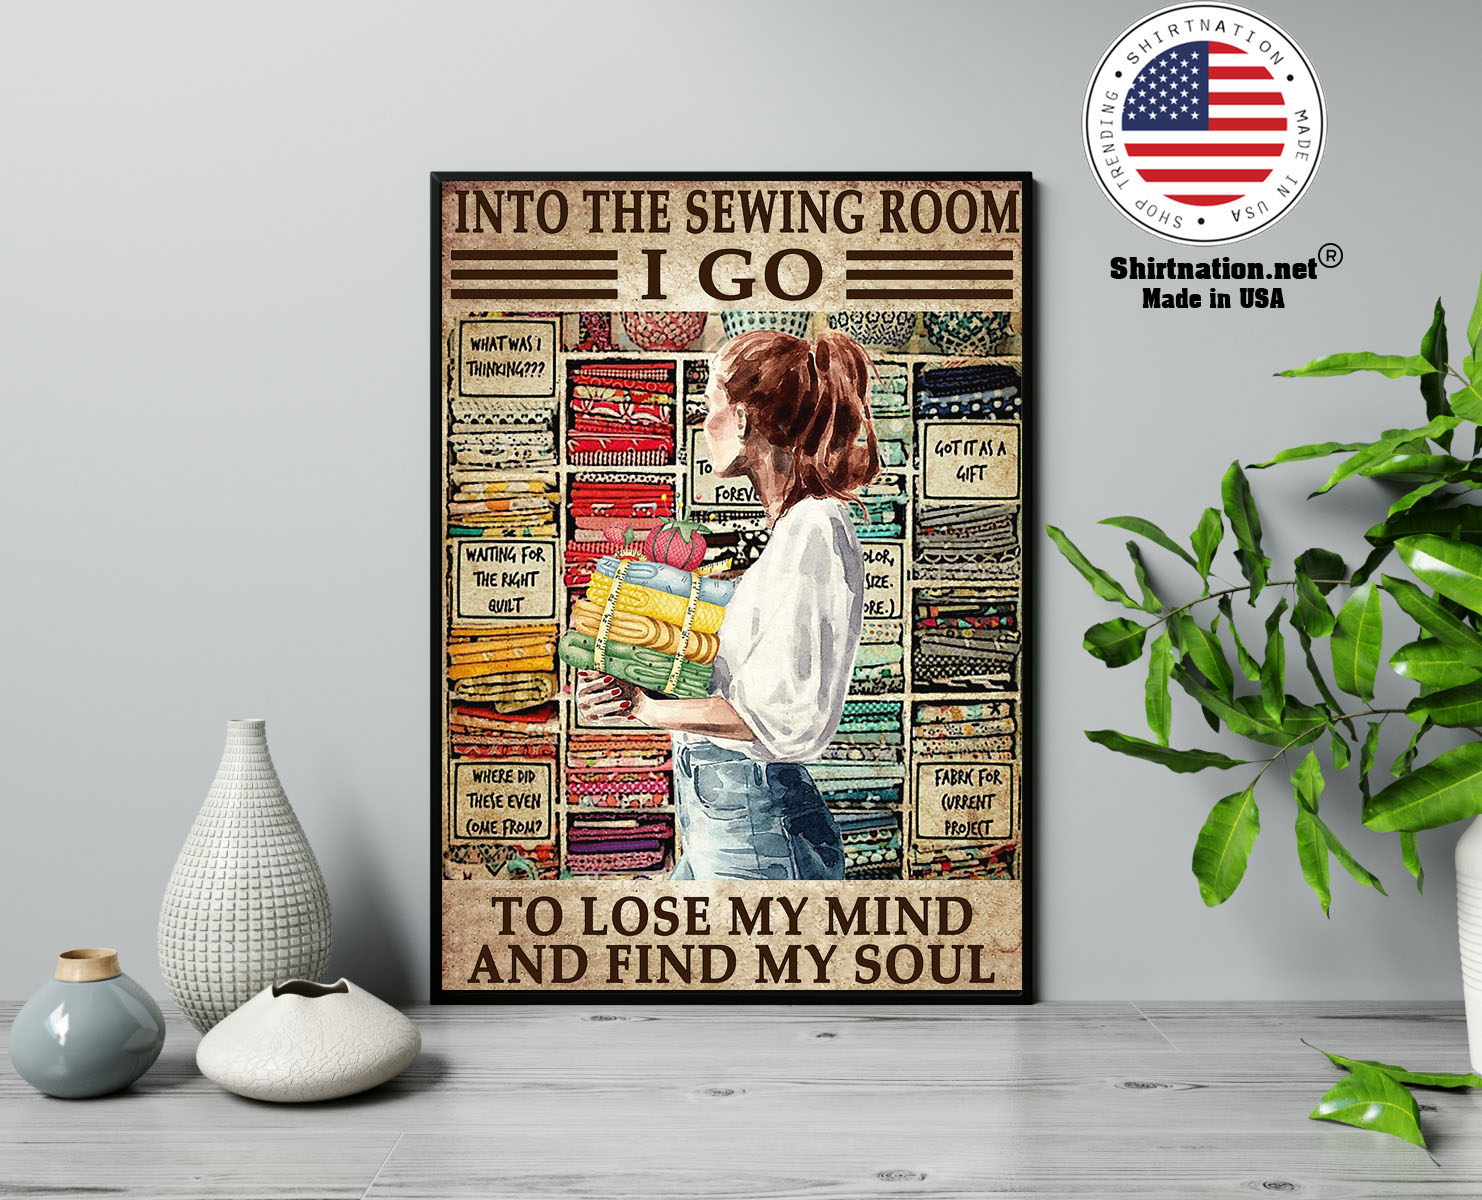 Into the sewing room I go to lose my mind and find my soul poster 13 1